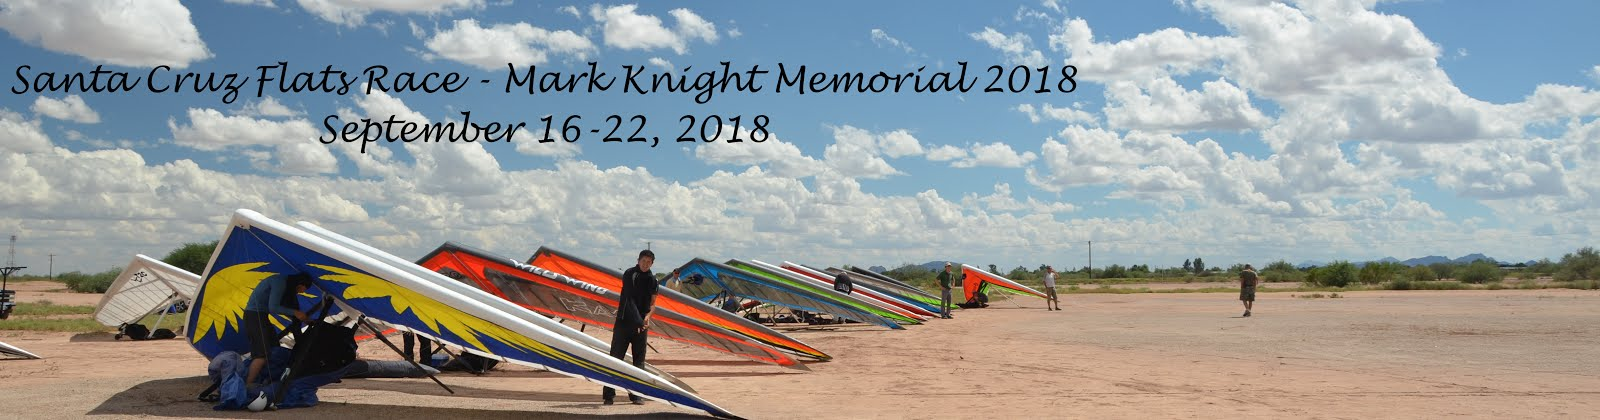 Santa Cruz Flats Race - Mark Knight Memorial 2018